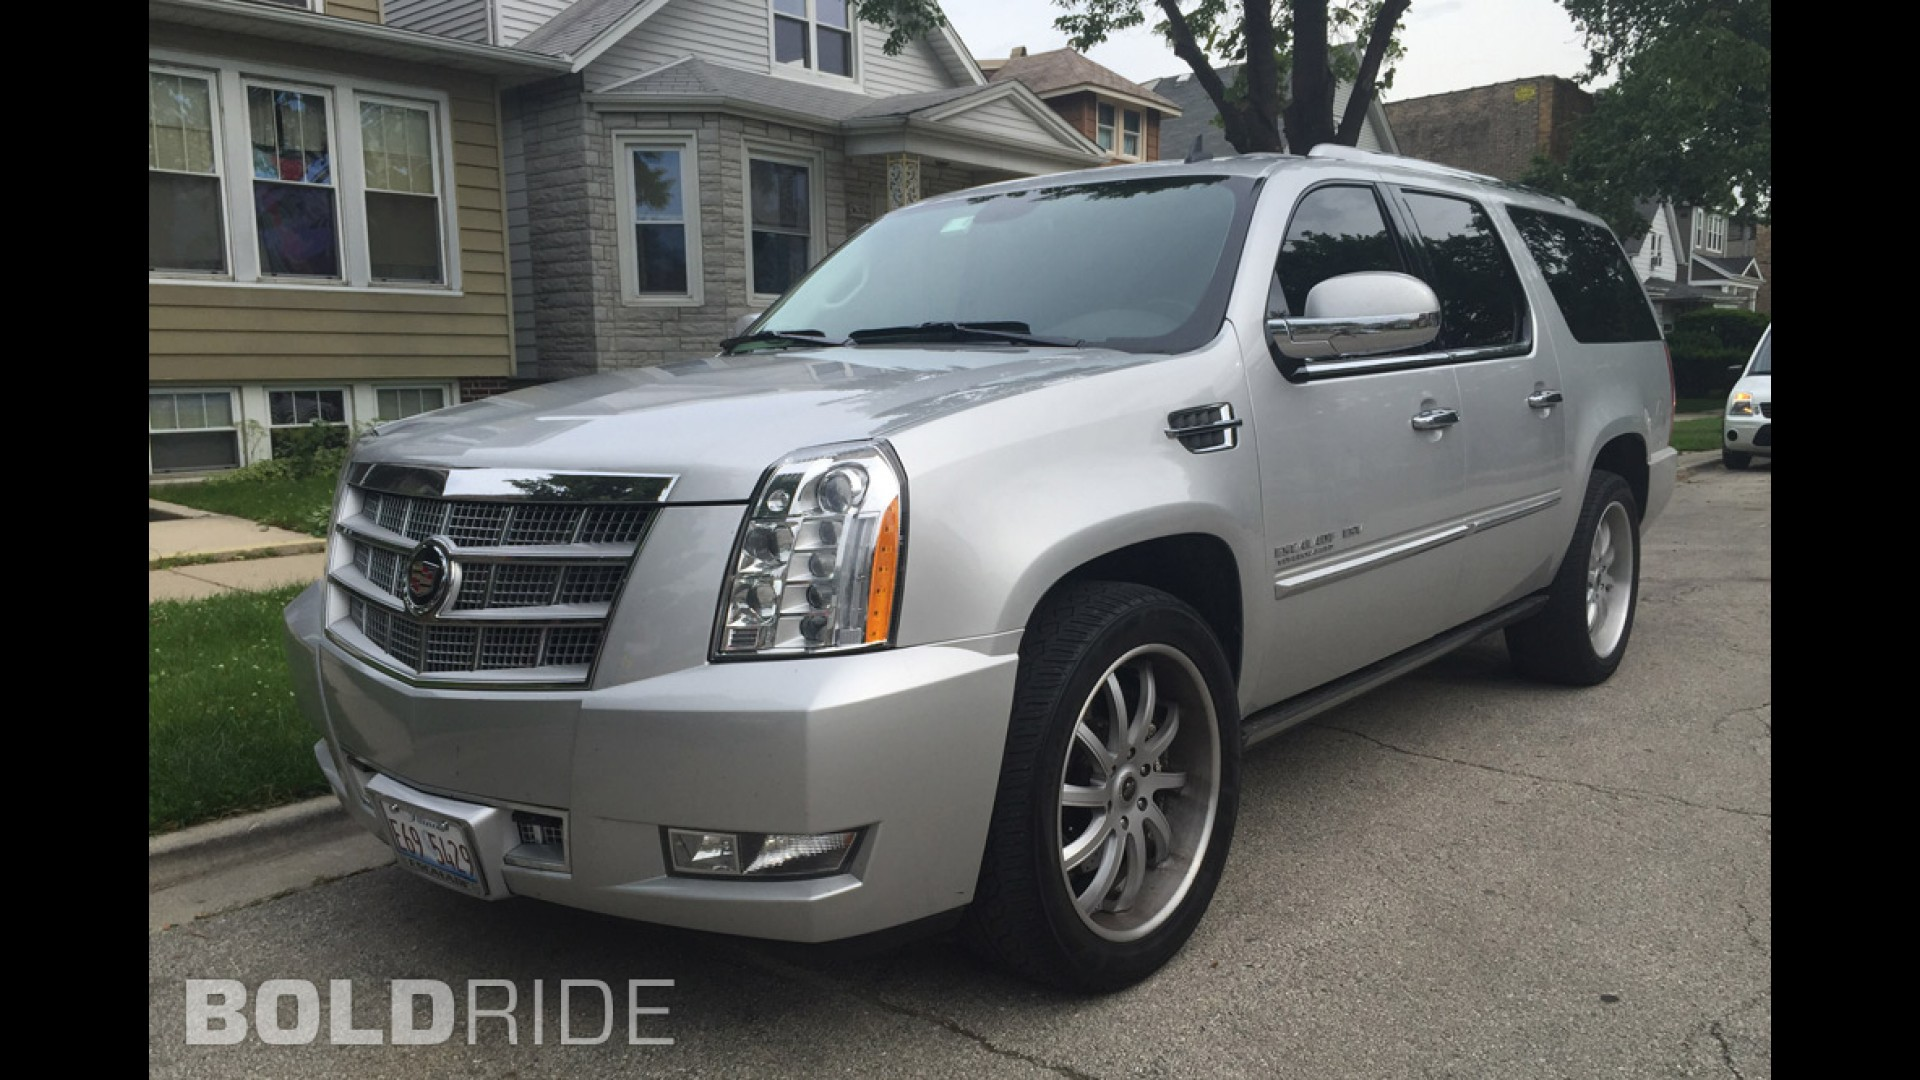 escalade pre esv fontana detail edition platinum sold owned cadillac featured in wm cars